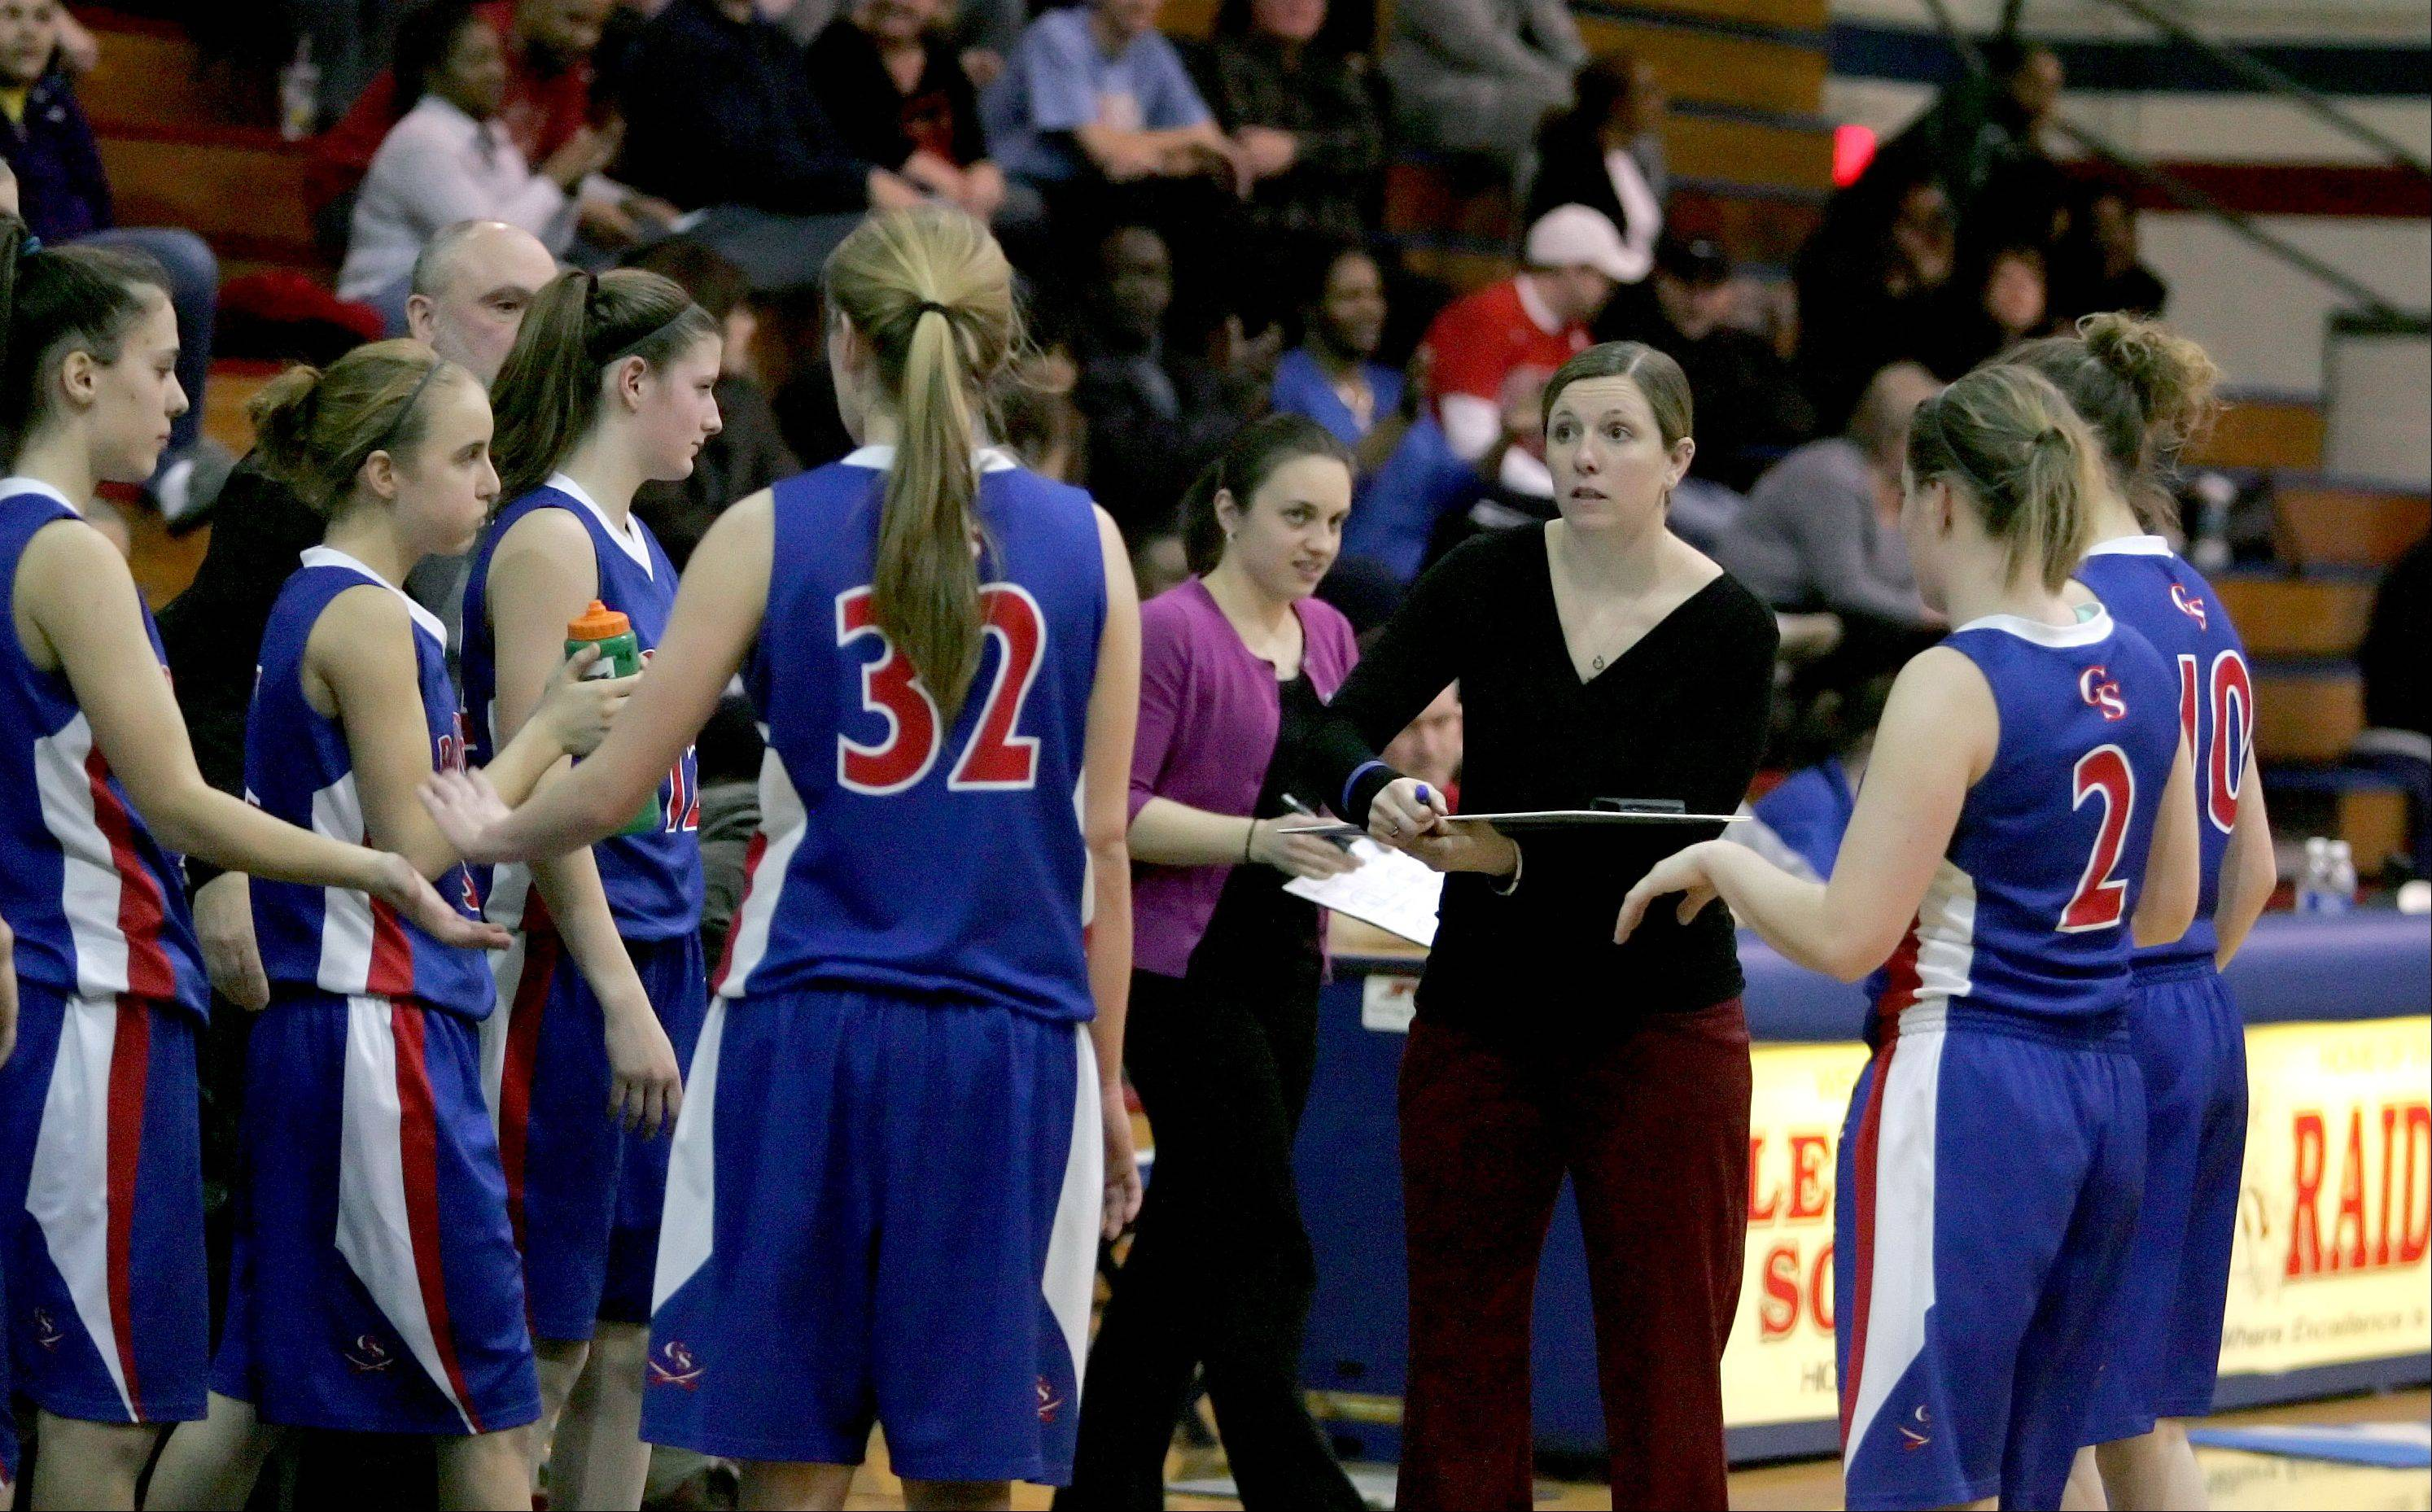 Glenbard South hosted St. Joseph Tuesday for Class 3A girls basketball sectional semifinal.